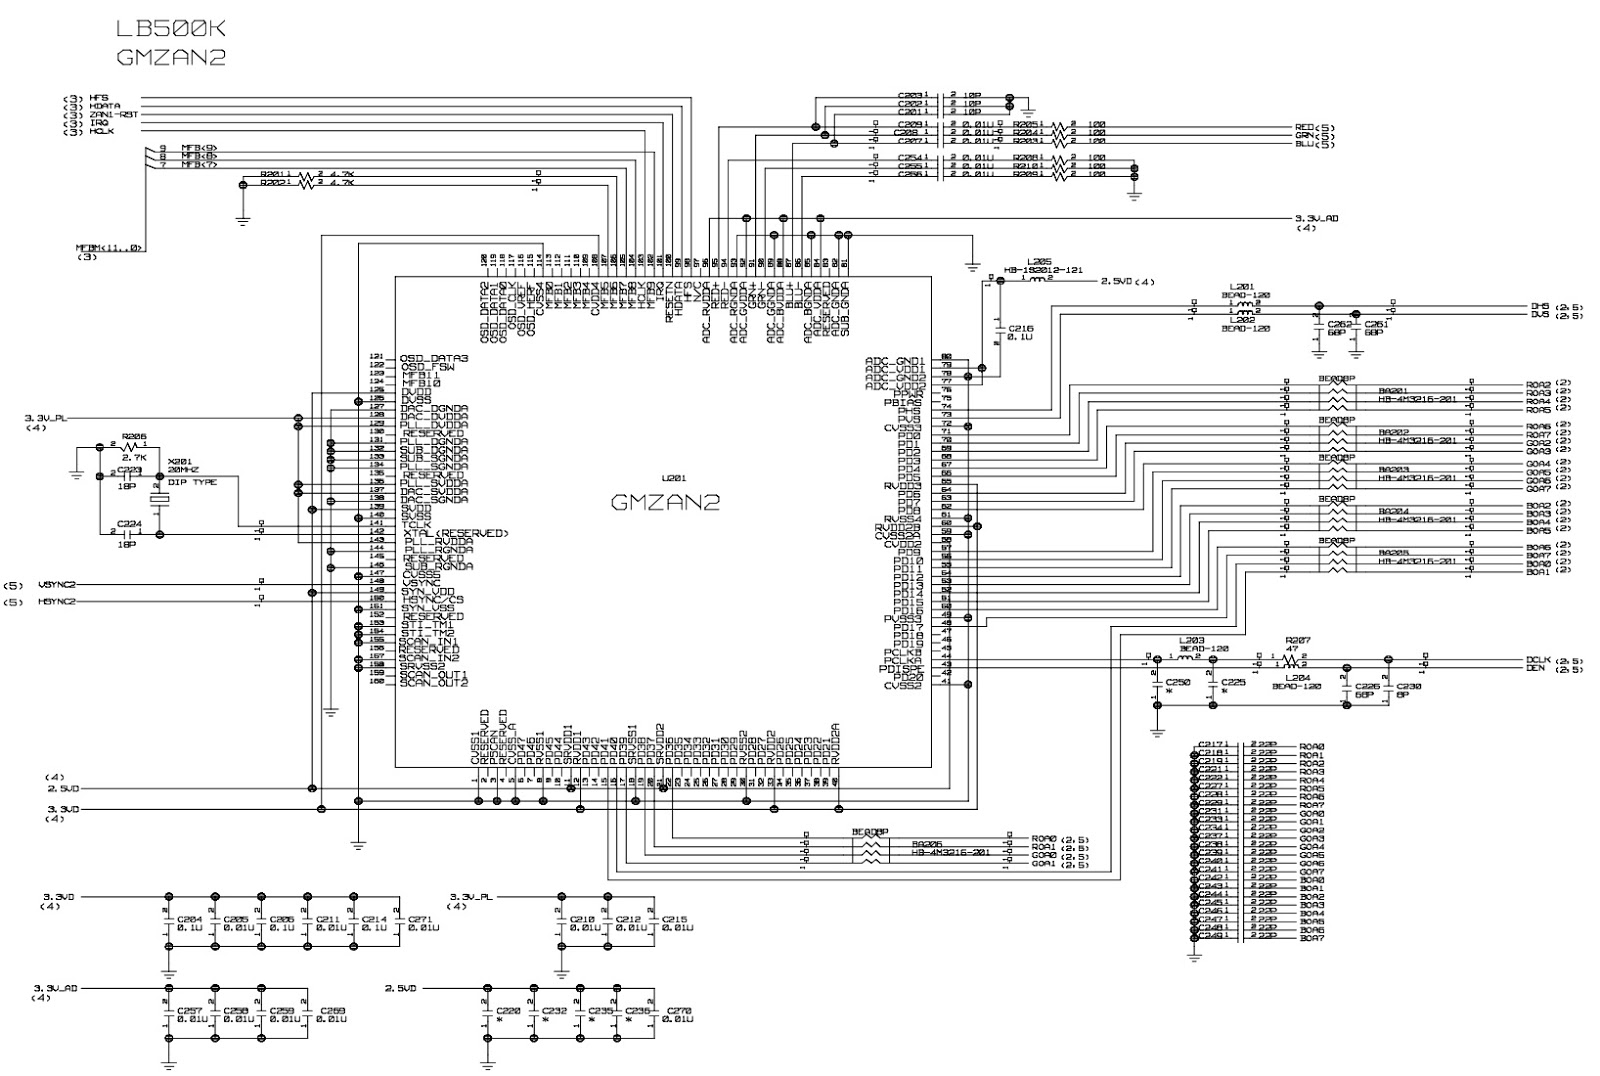 fig 2 lg flatron l1510sf 15 inch lcd monitor schematic (circuit battery monitor circuit diagram at readyjetset.co